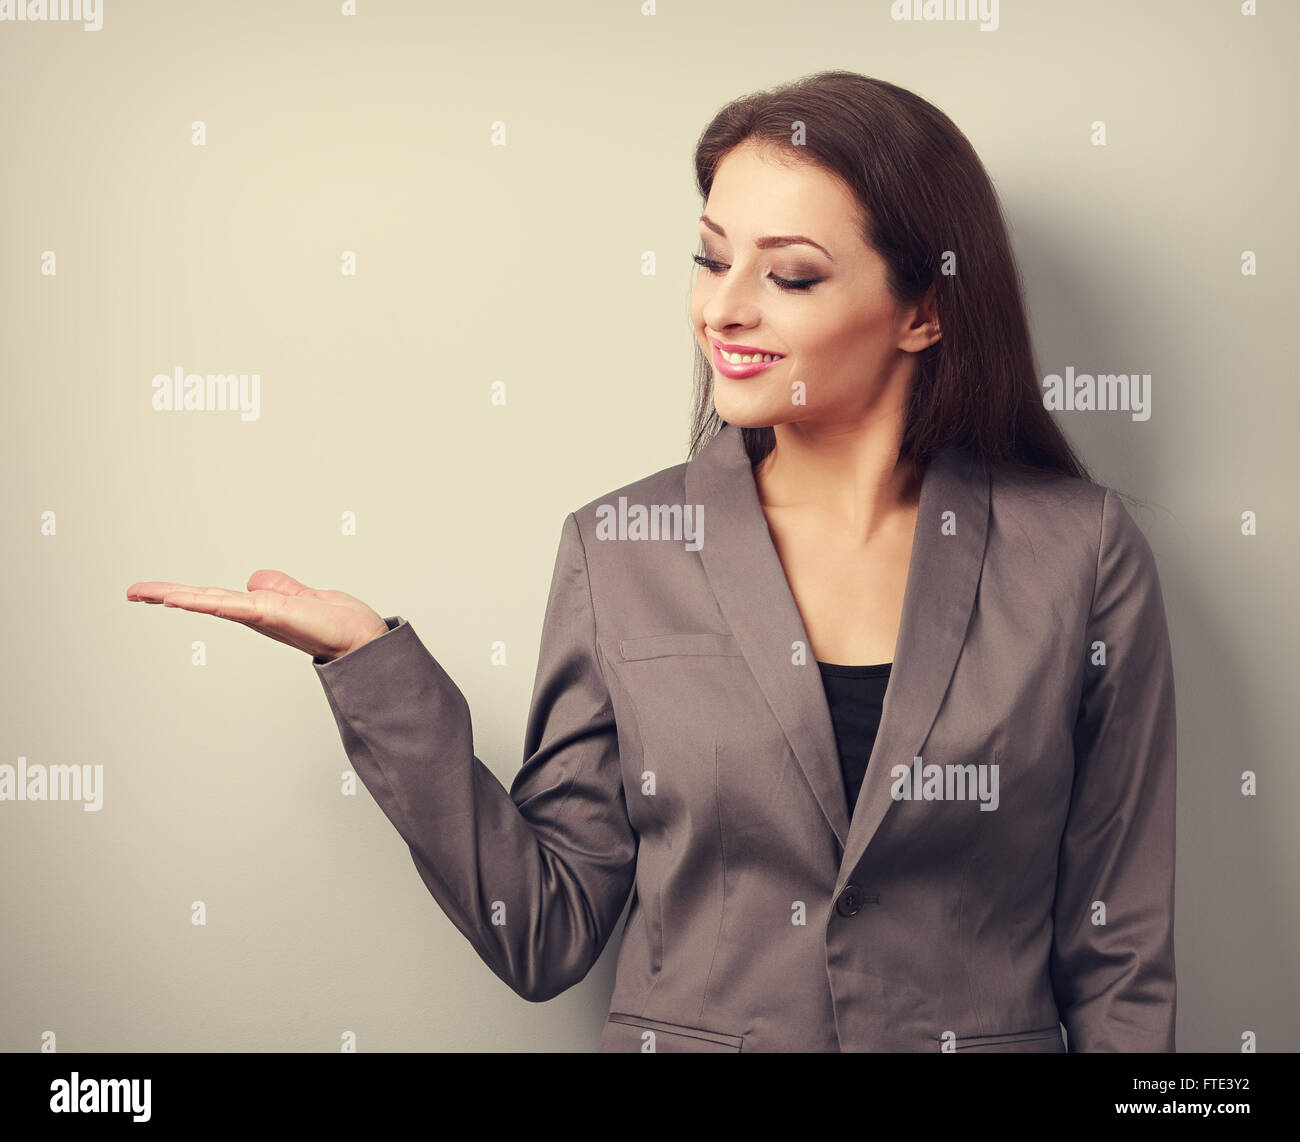 Happy business woman holding something empty in hand and demonstration. Toned portrait - Stock Image